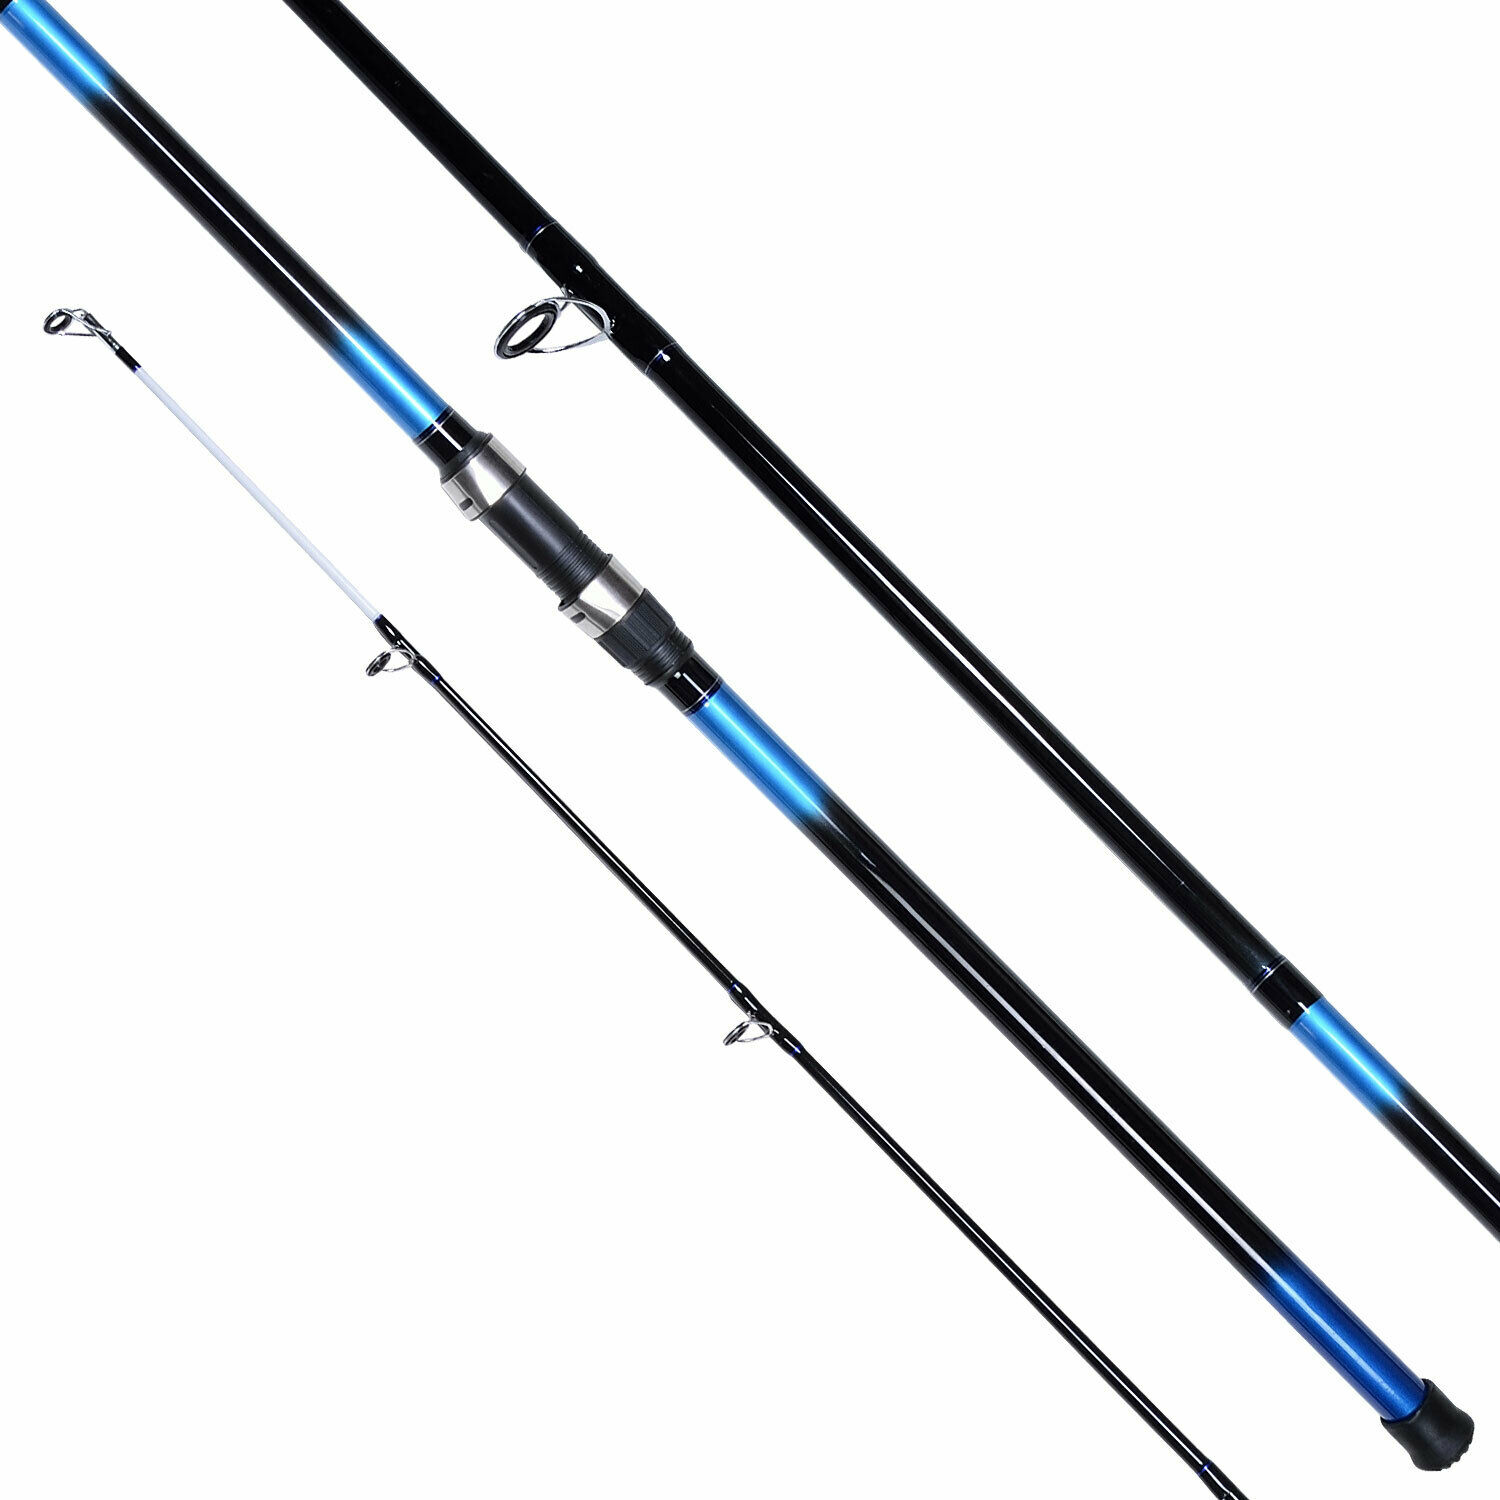 New shakespeare beta beachcaster 12ft sea fishing rod 3 for 3 piece fishing rod